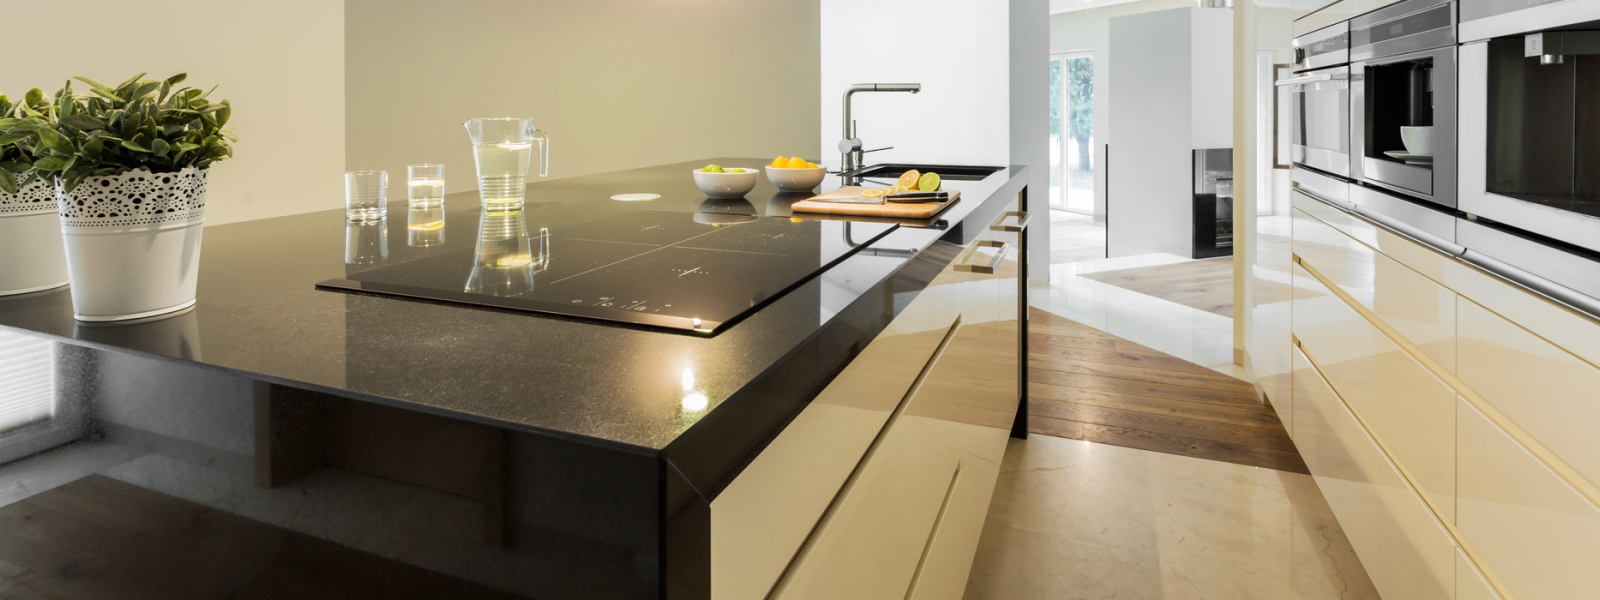 Caesarstone___Countertops__Pond5___Small.jpg